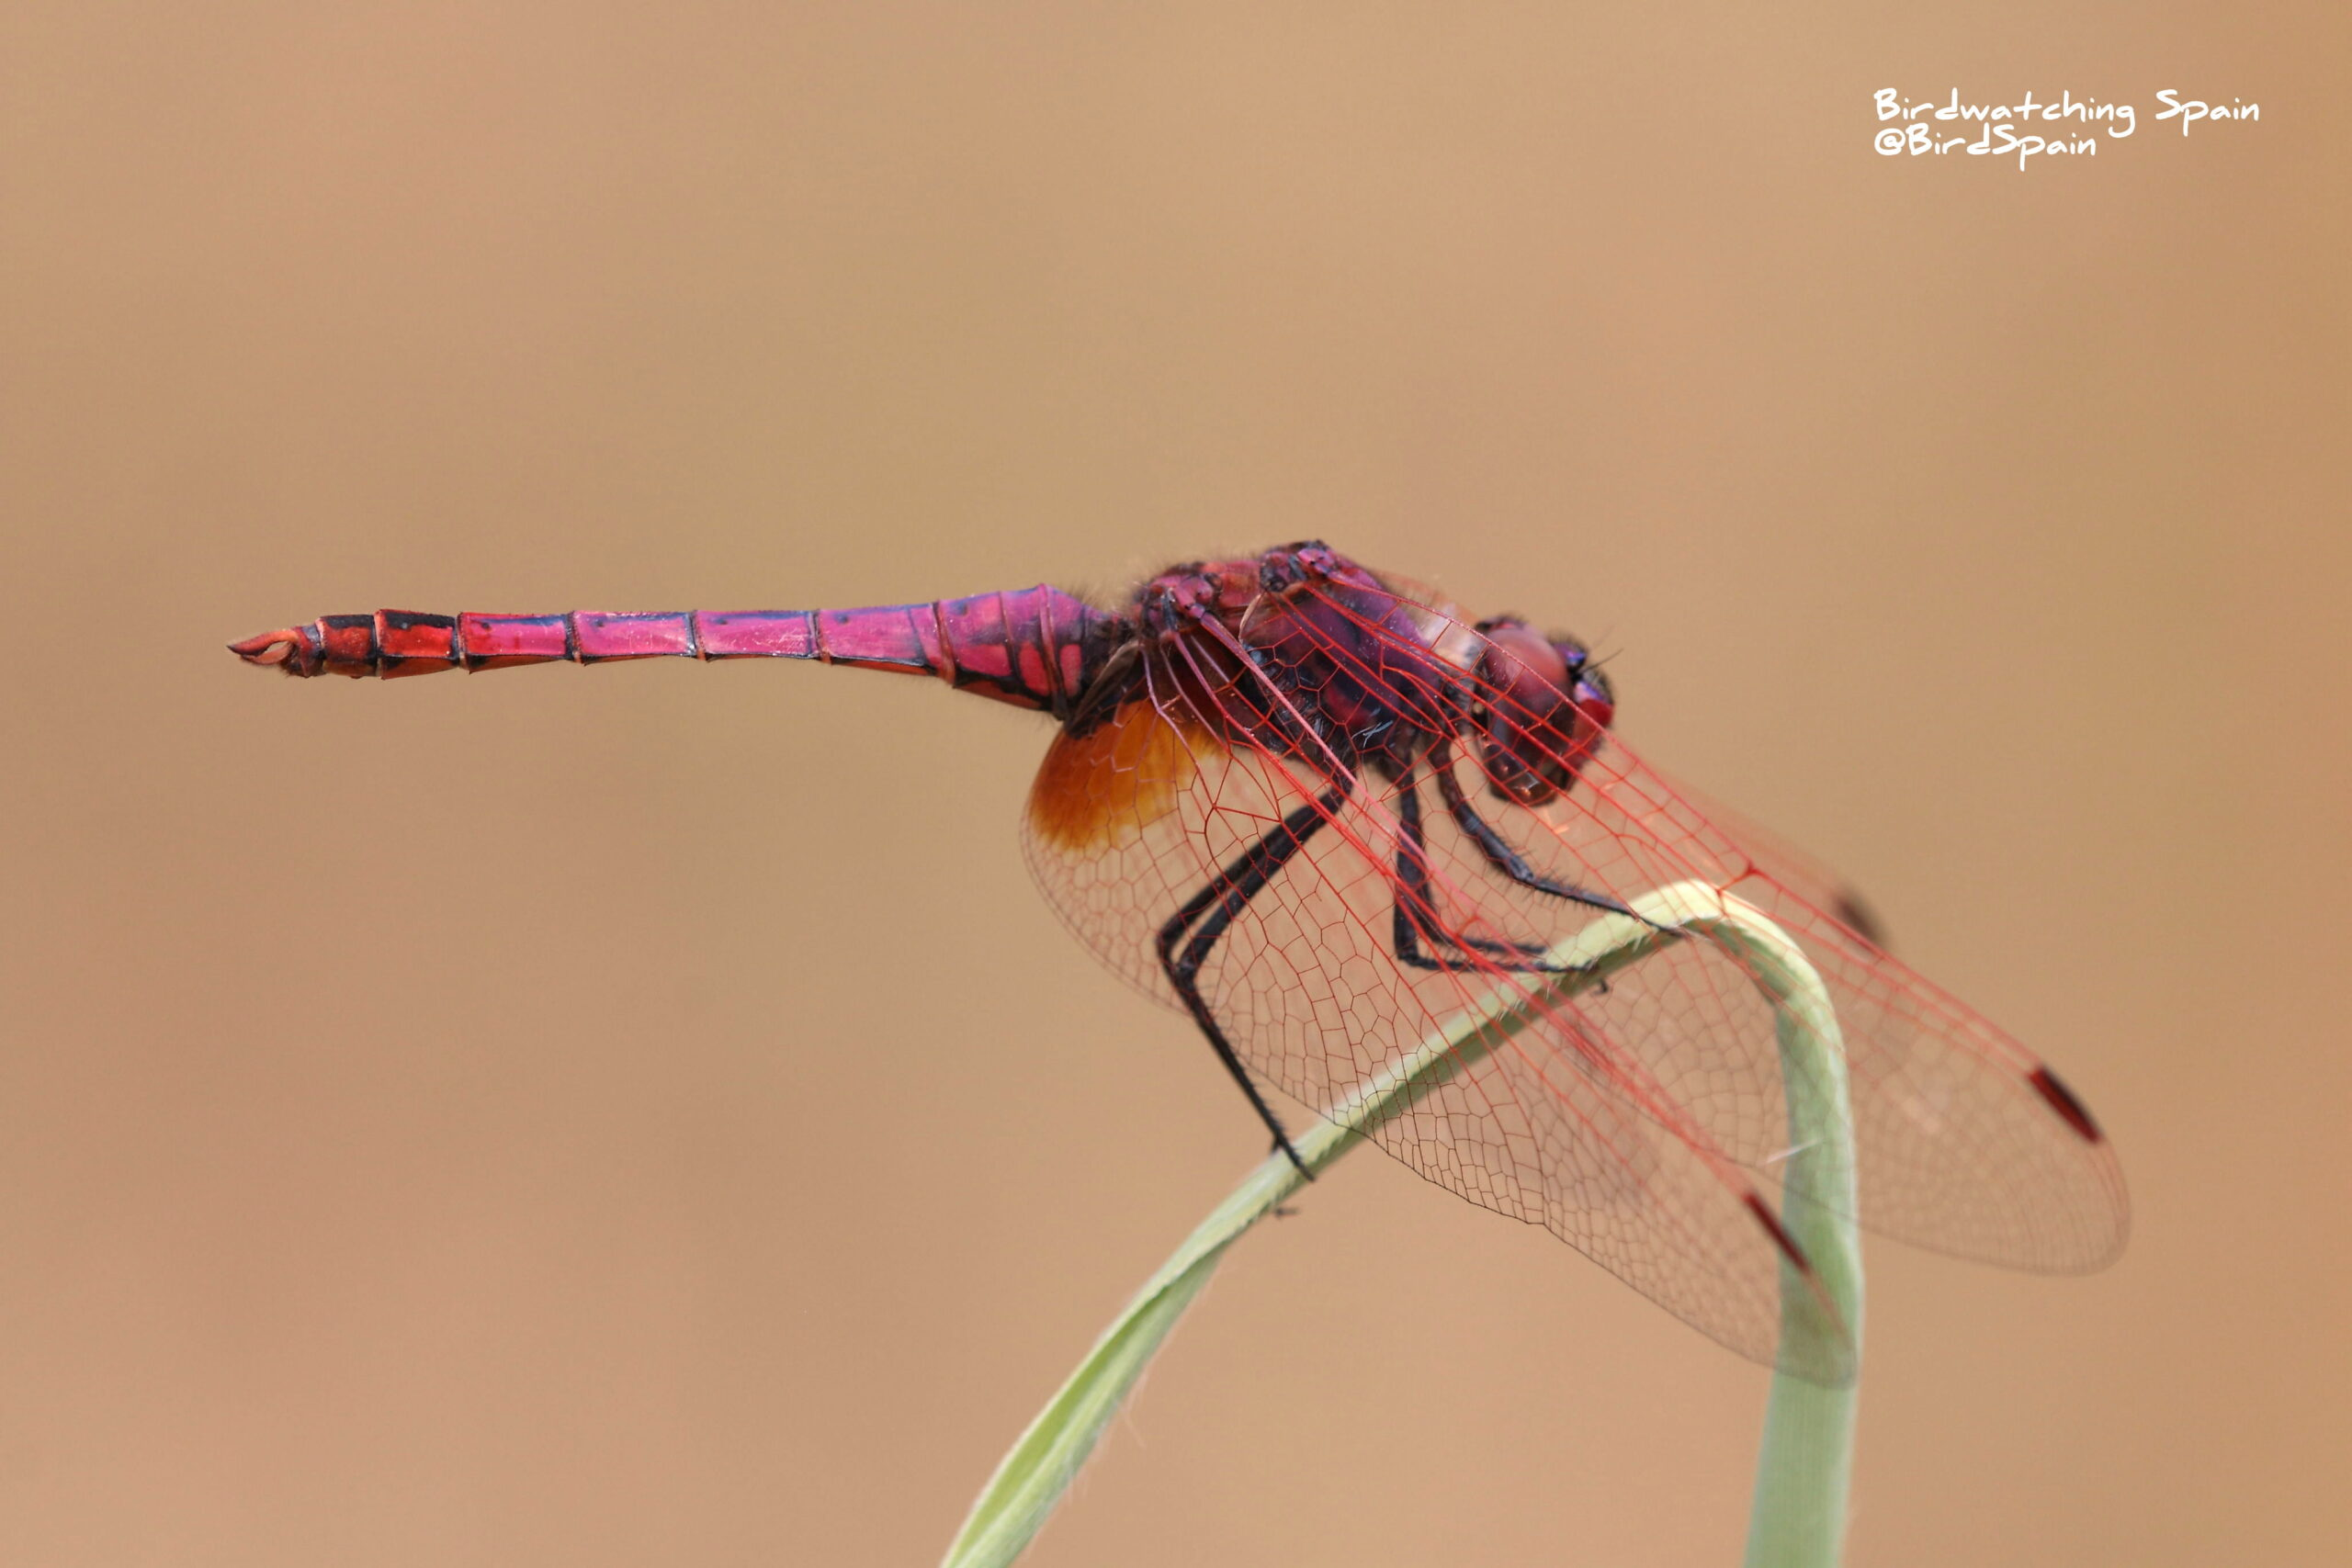 violet dropwing-dragonflies tours in Spain